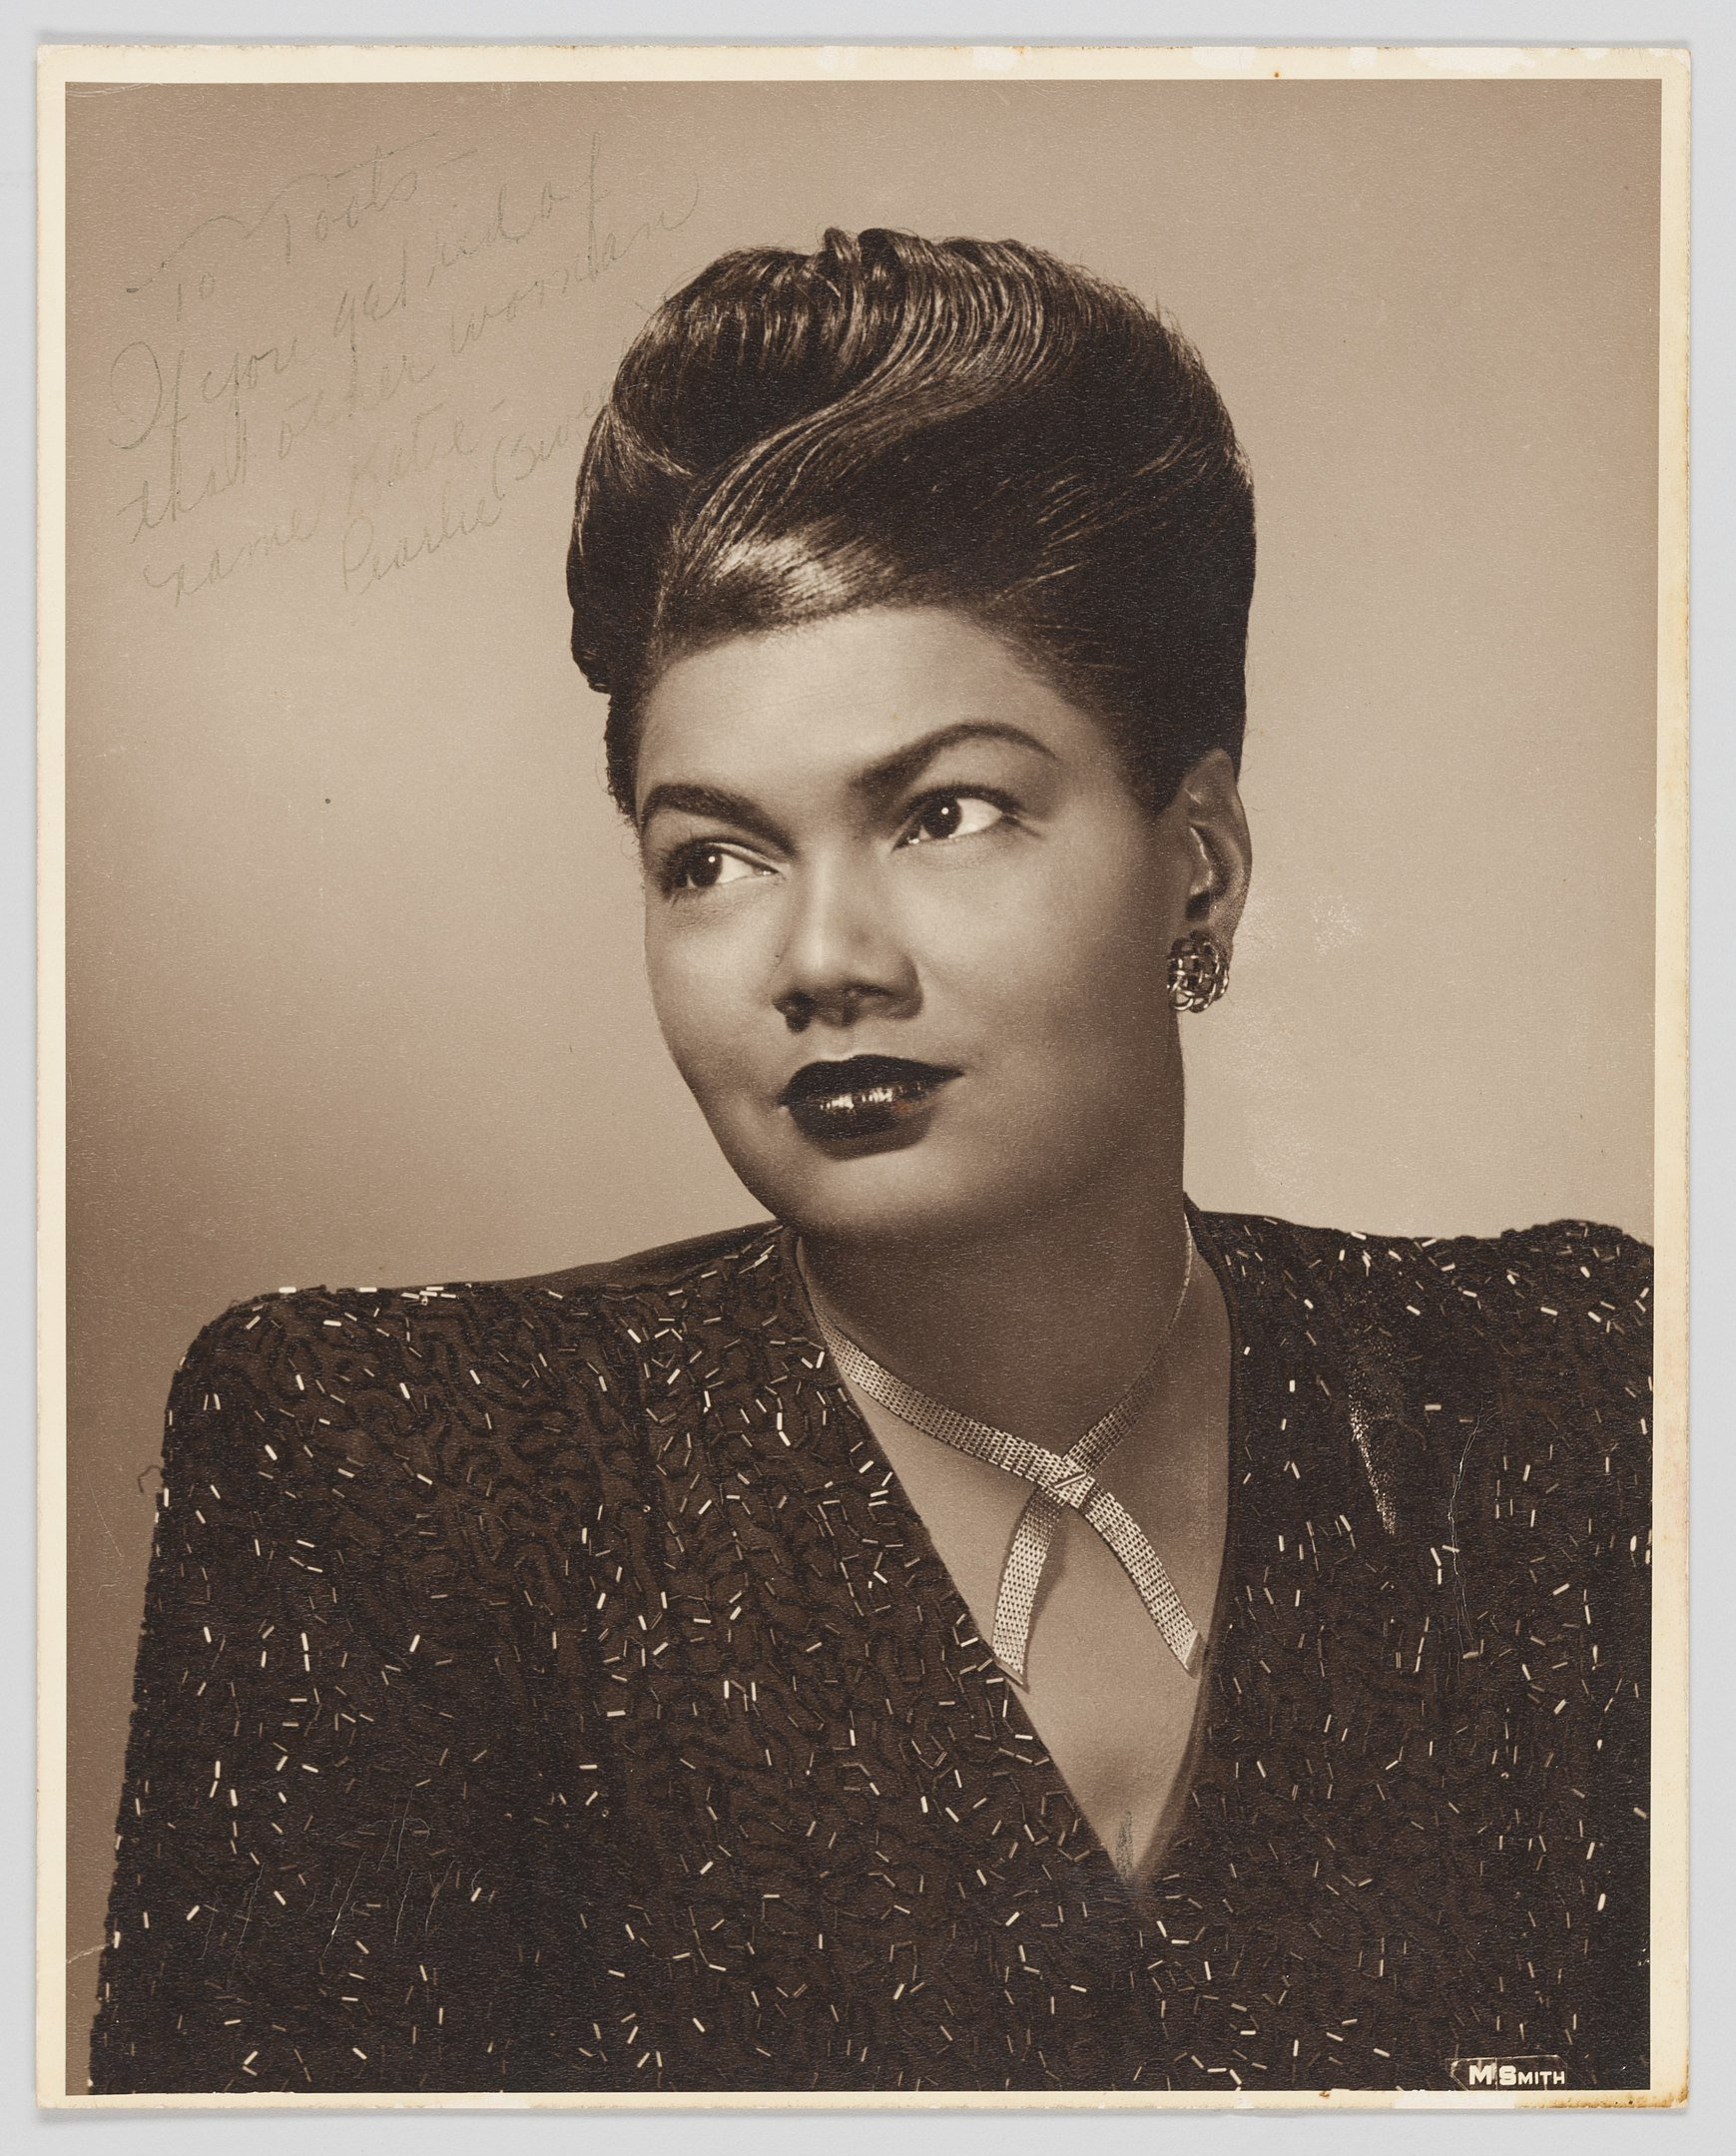 A black and white photo of Pearl Bailey taken in 1960 with an autograph of the actress | Photo, Wikimedia Commons Images, By Marvin Smith CC0